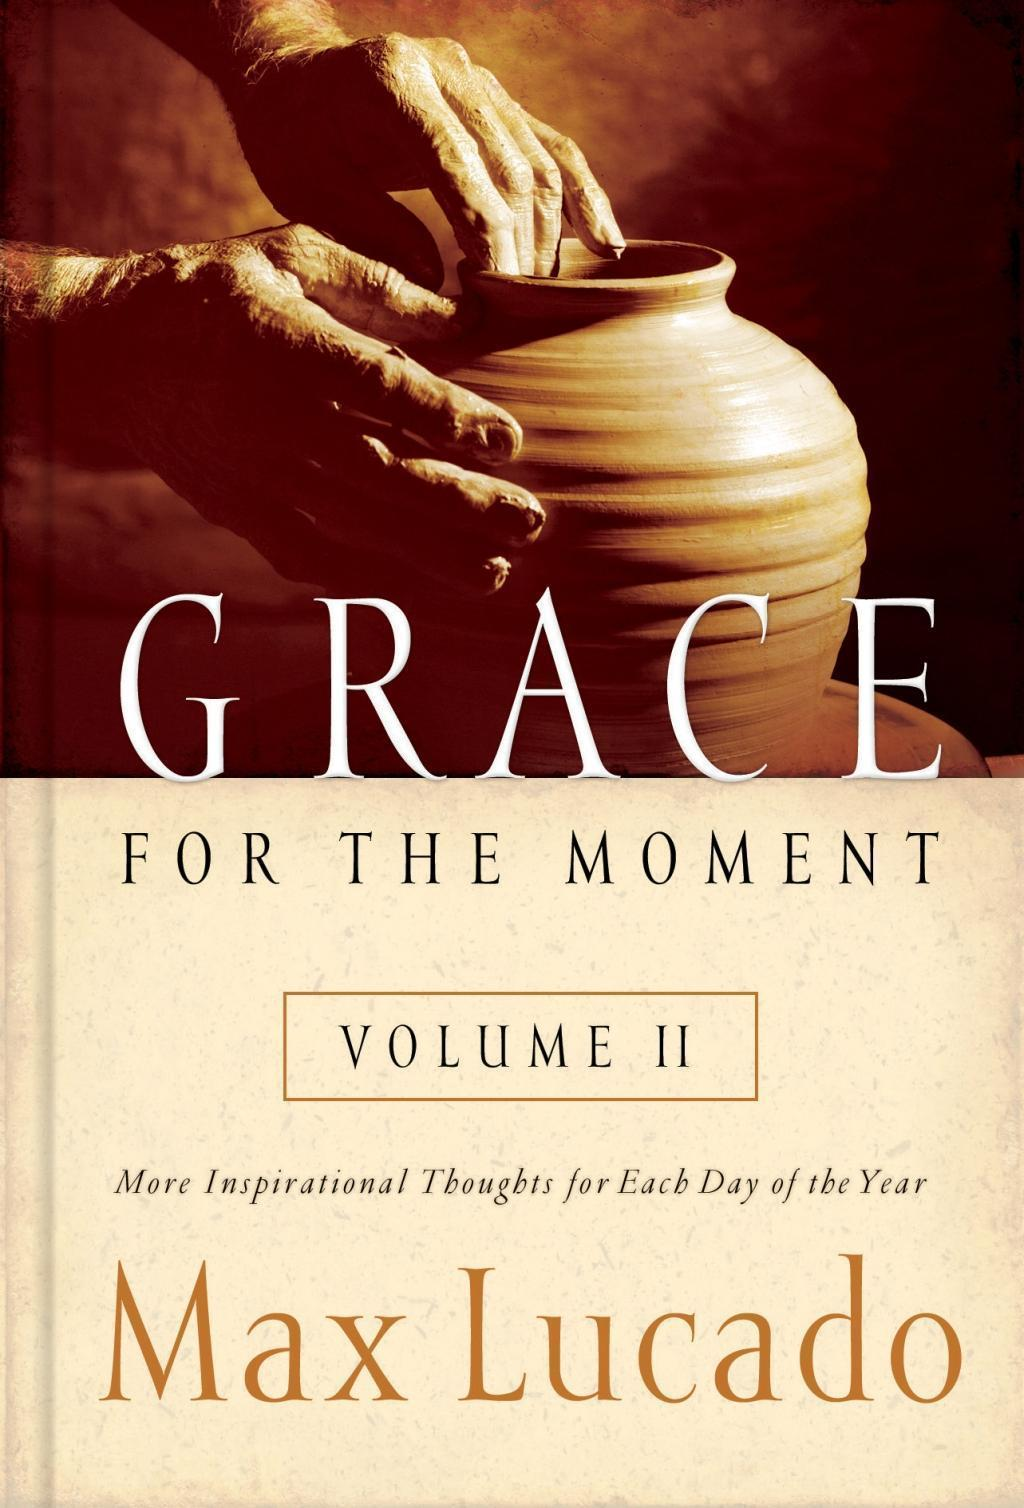 Grace for the Moment Volume II